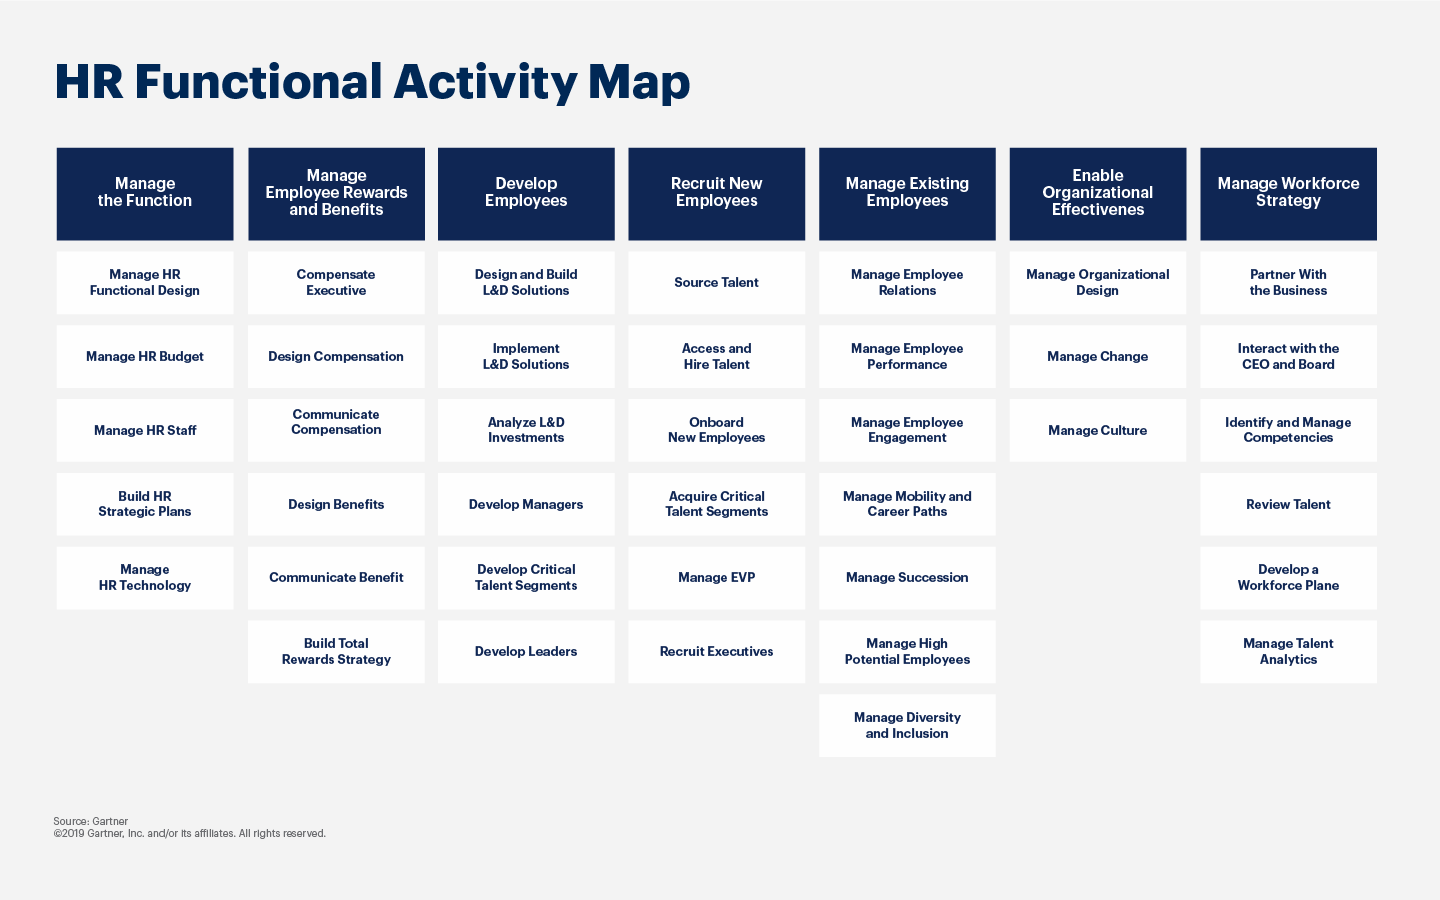 Graphic displaying the HR Functional Activity Map.